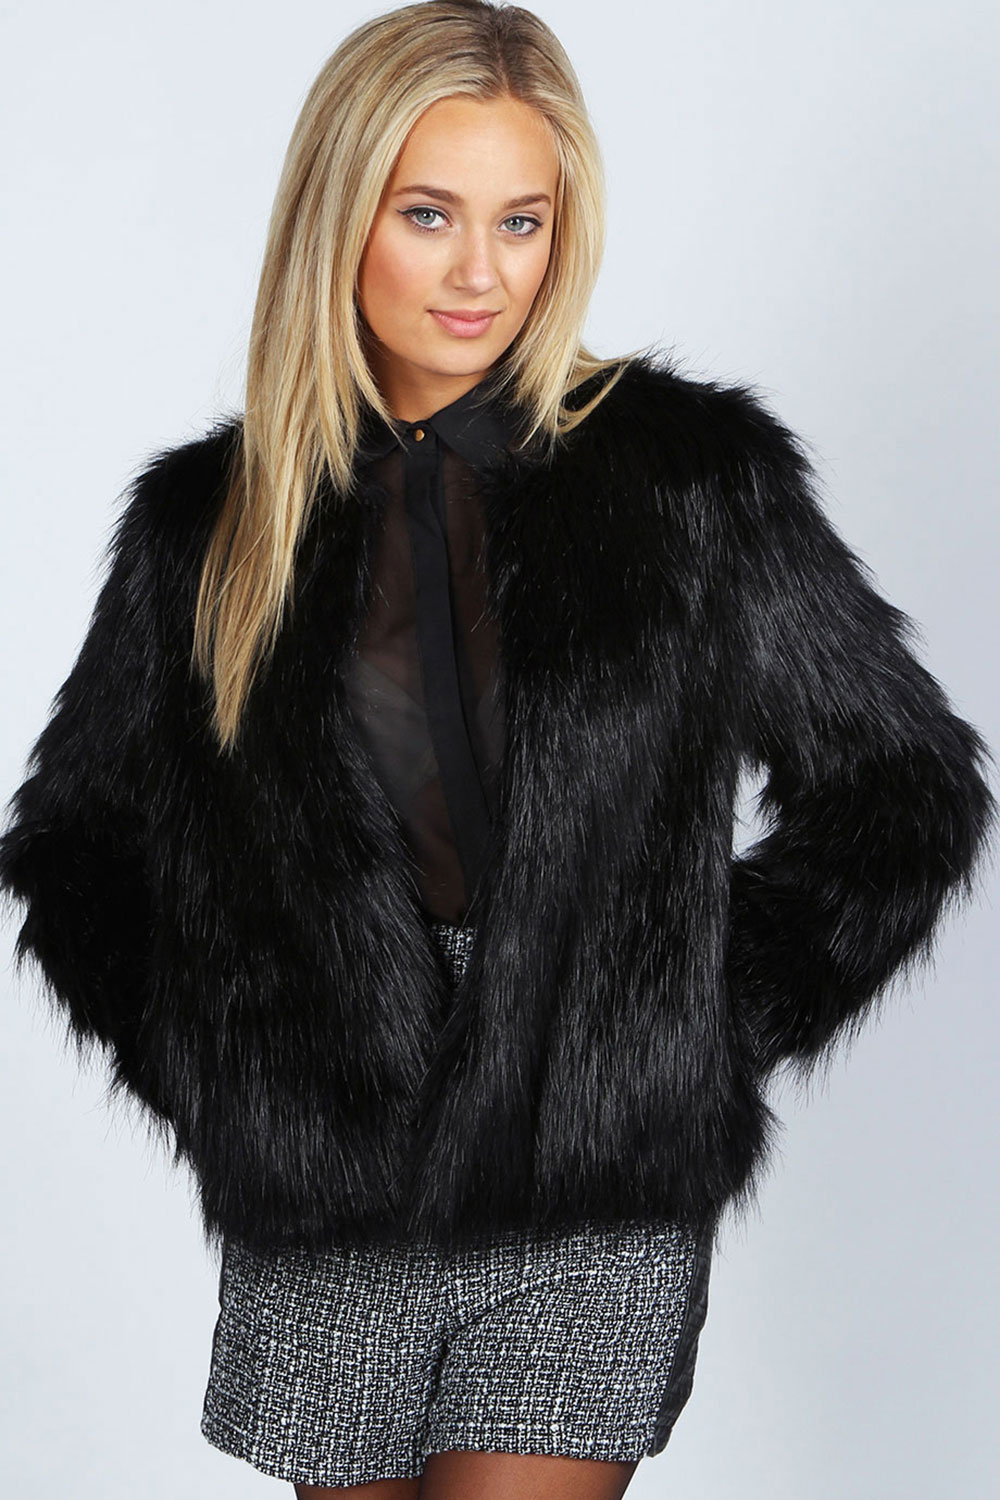 No matter which fur you treat yourself to, you can be assured that your splendid new Genuine Fur Gilet, Jacket or Coat will do the trick. Recent Reviews About our Fur Coats Fur Jacket - Rex Rabbit Fur with Fox Fur Collar - Black/5().